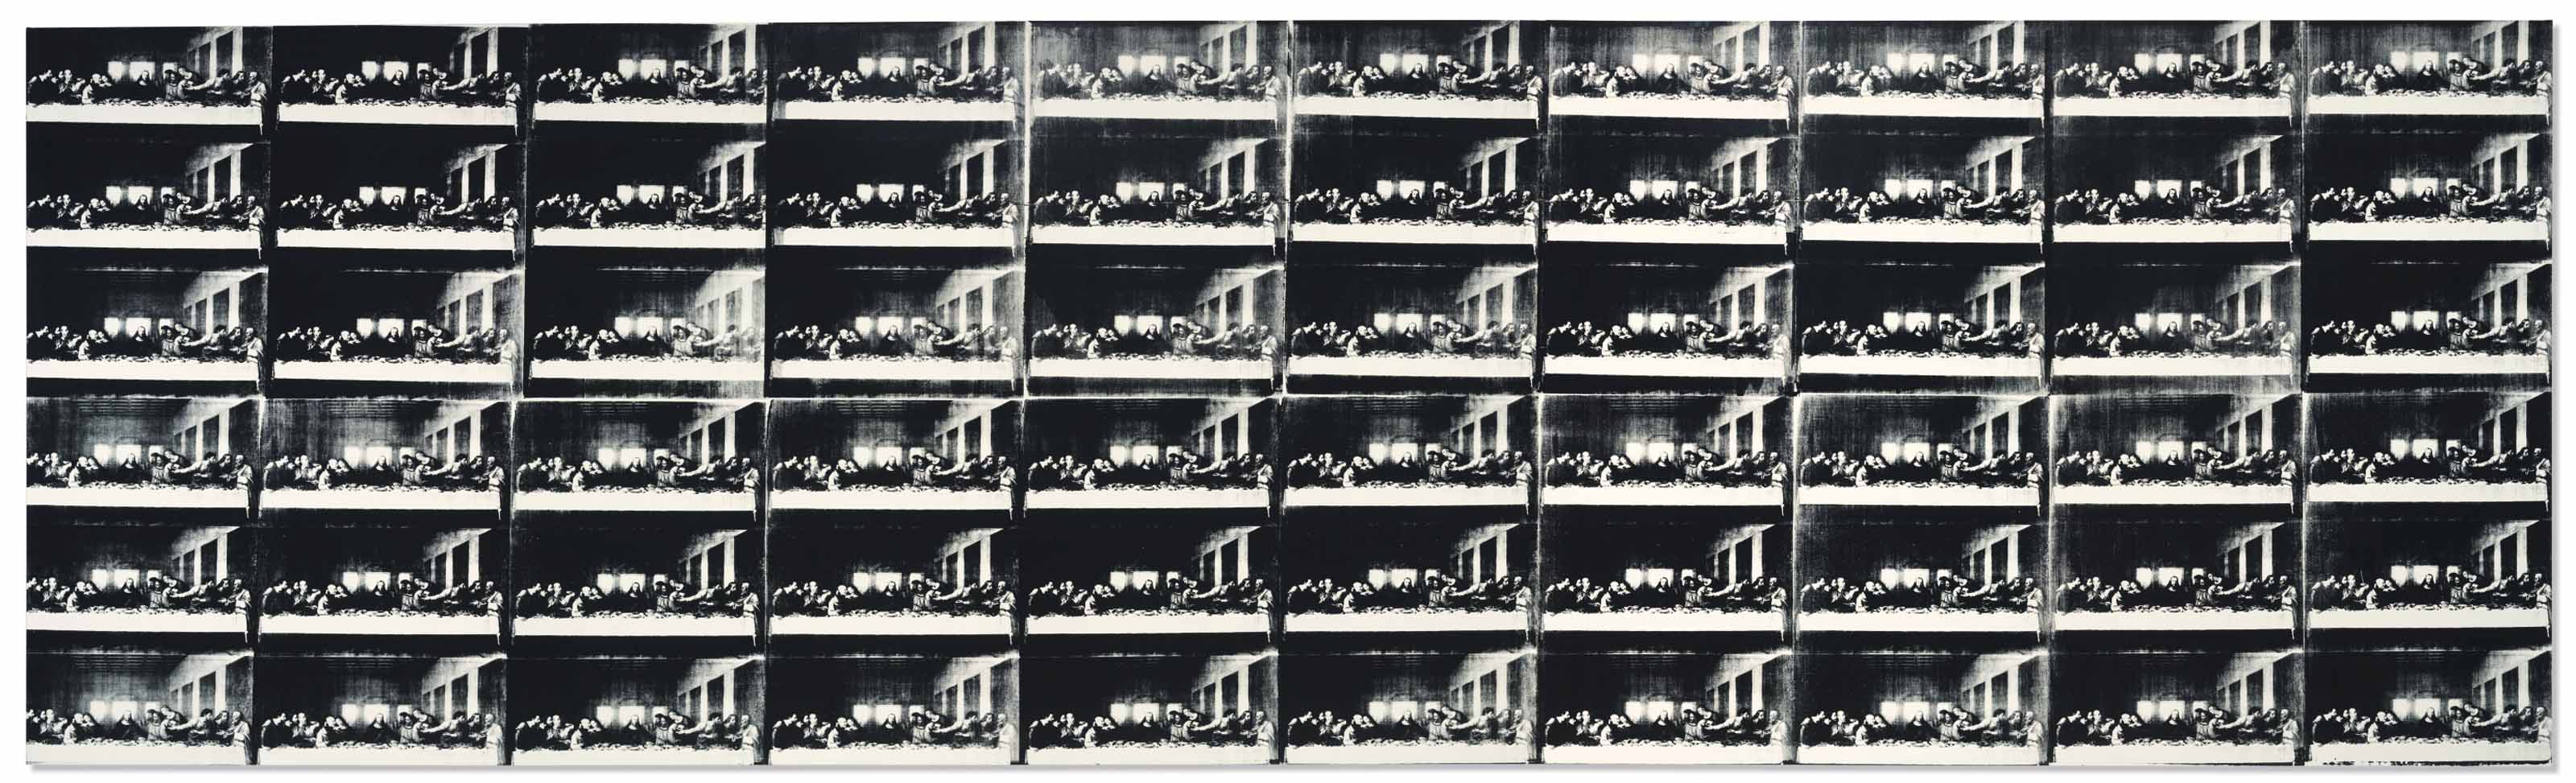 Andy Warhol (1928-1987), Sixty Last Suppers, painted in 1986. 116 x 393  in (294.6 x 998.2  cm). Sold for $60,875,000 in the Post-War & Contemporary Art Evening Sale on 15 November 2017  at Christie's in New York